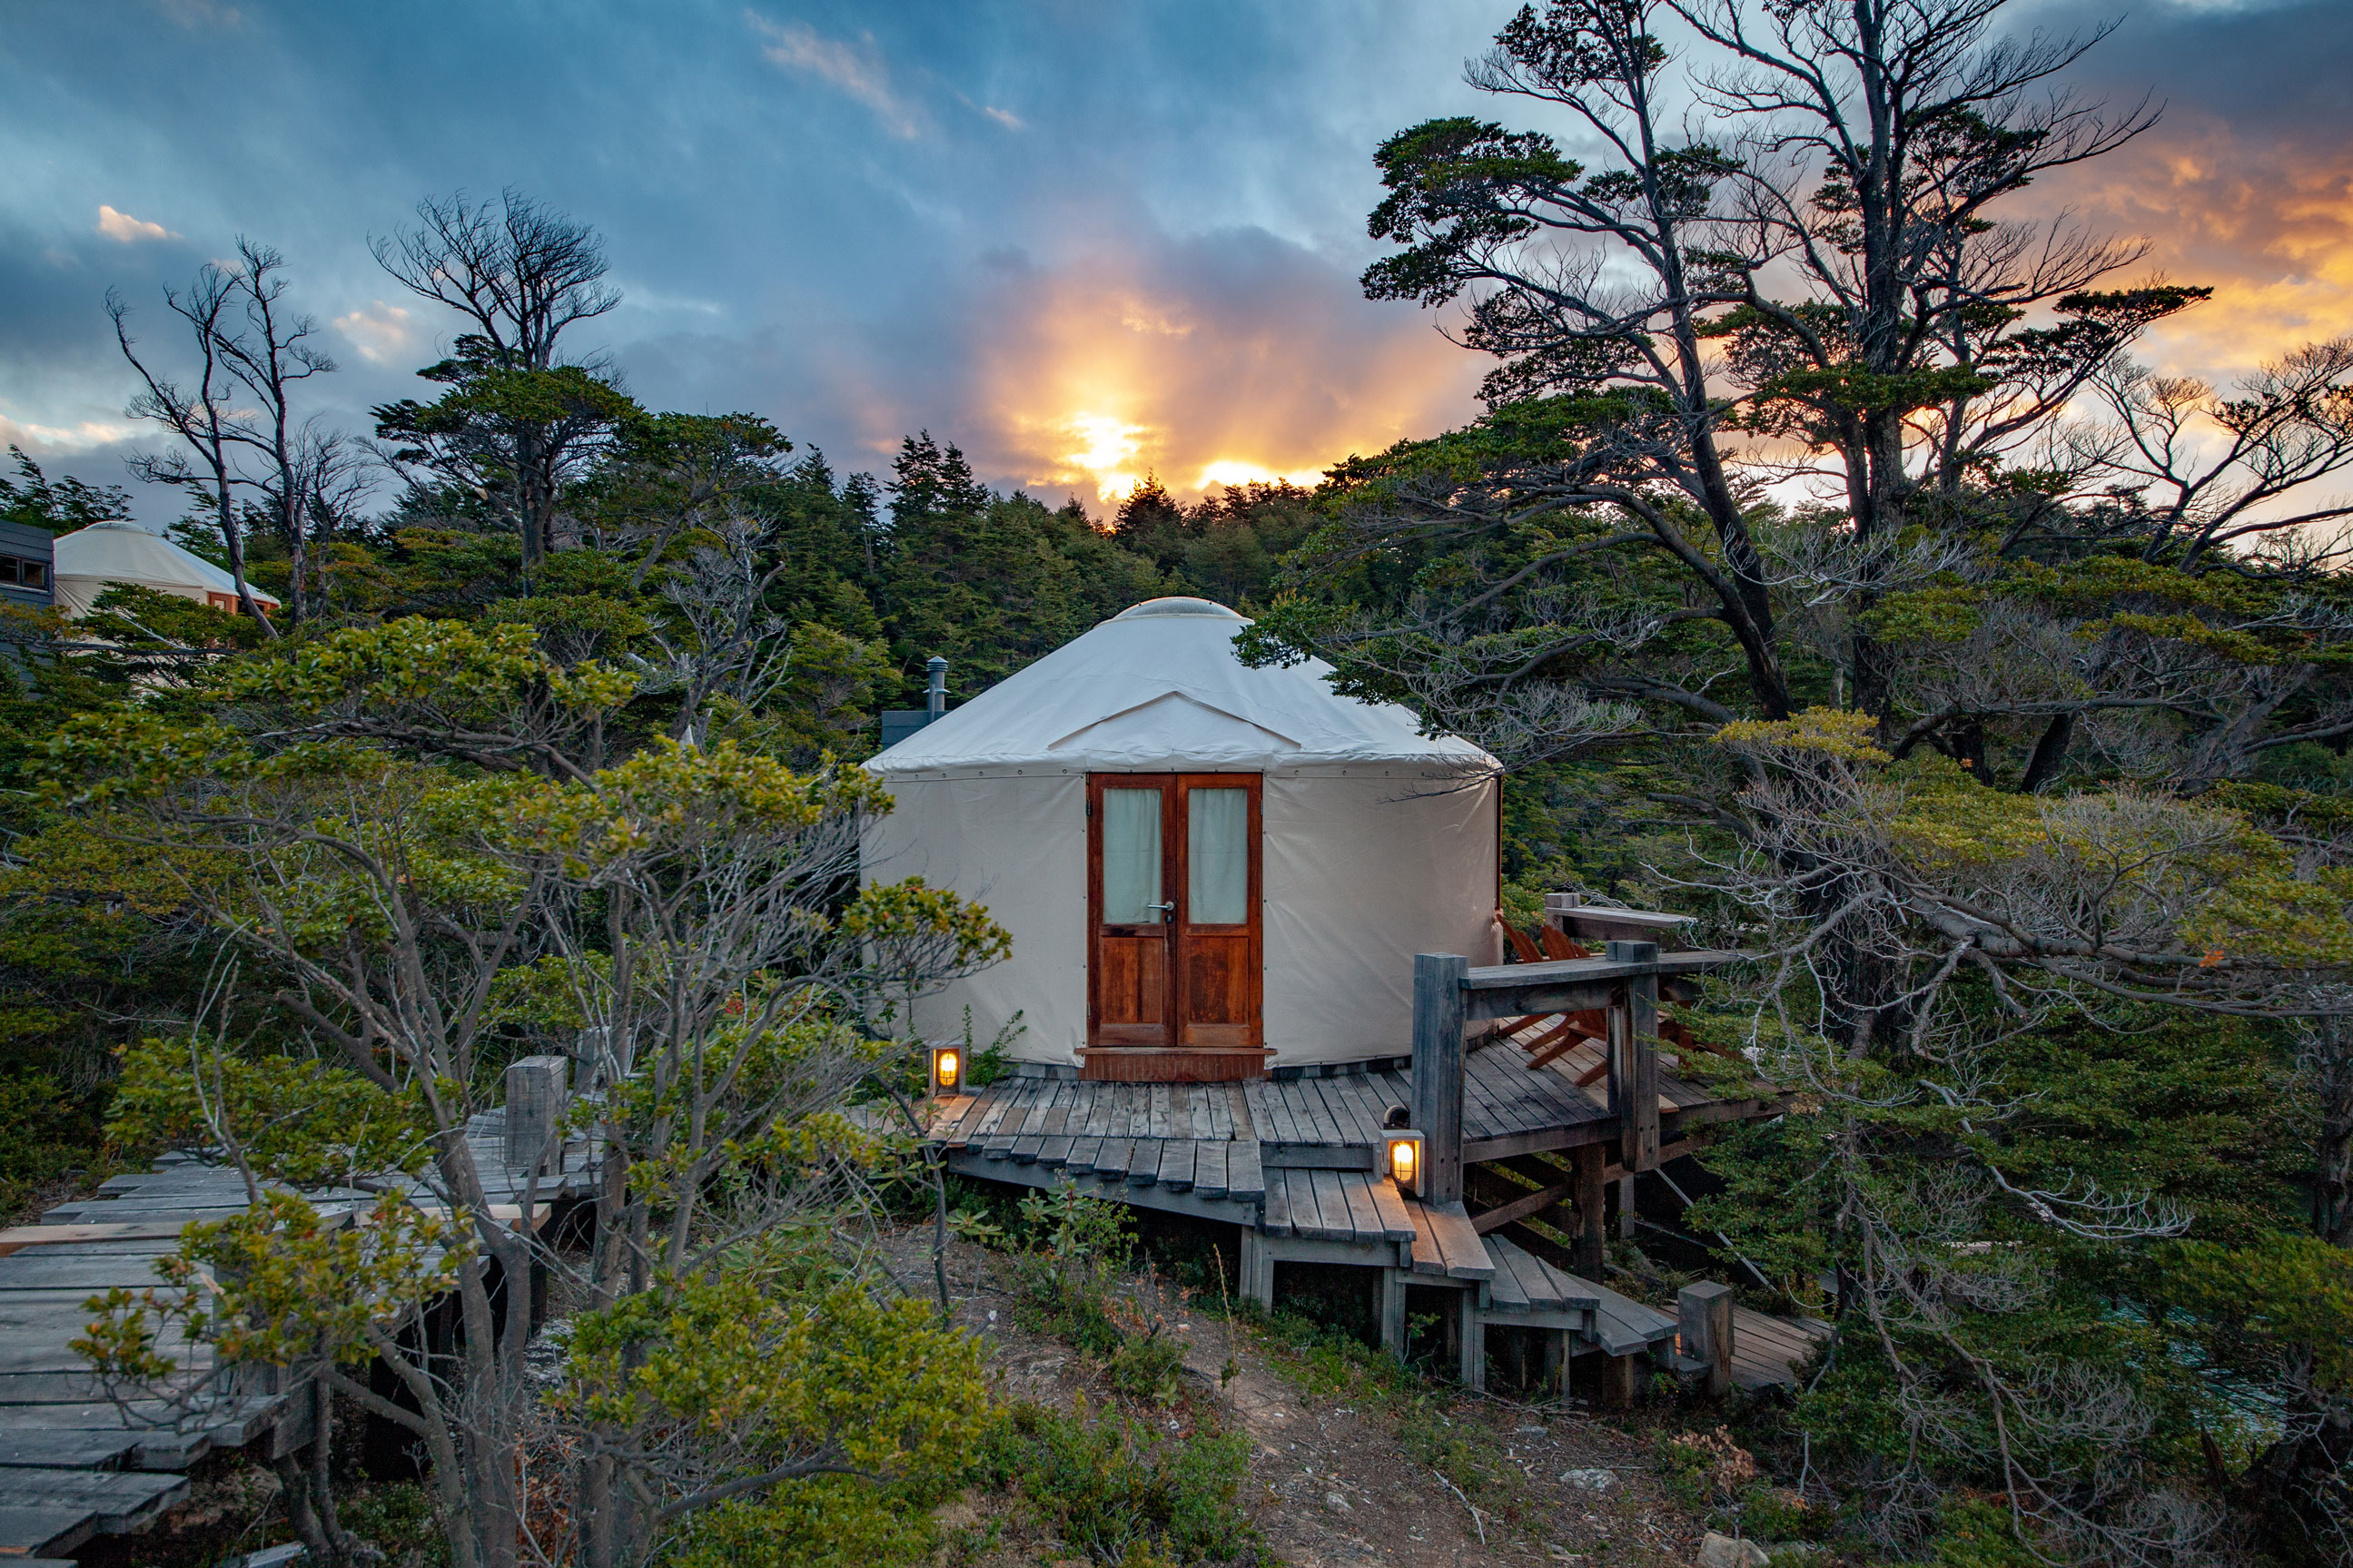 Patagonia Camp Yurt Eco-Lodge